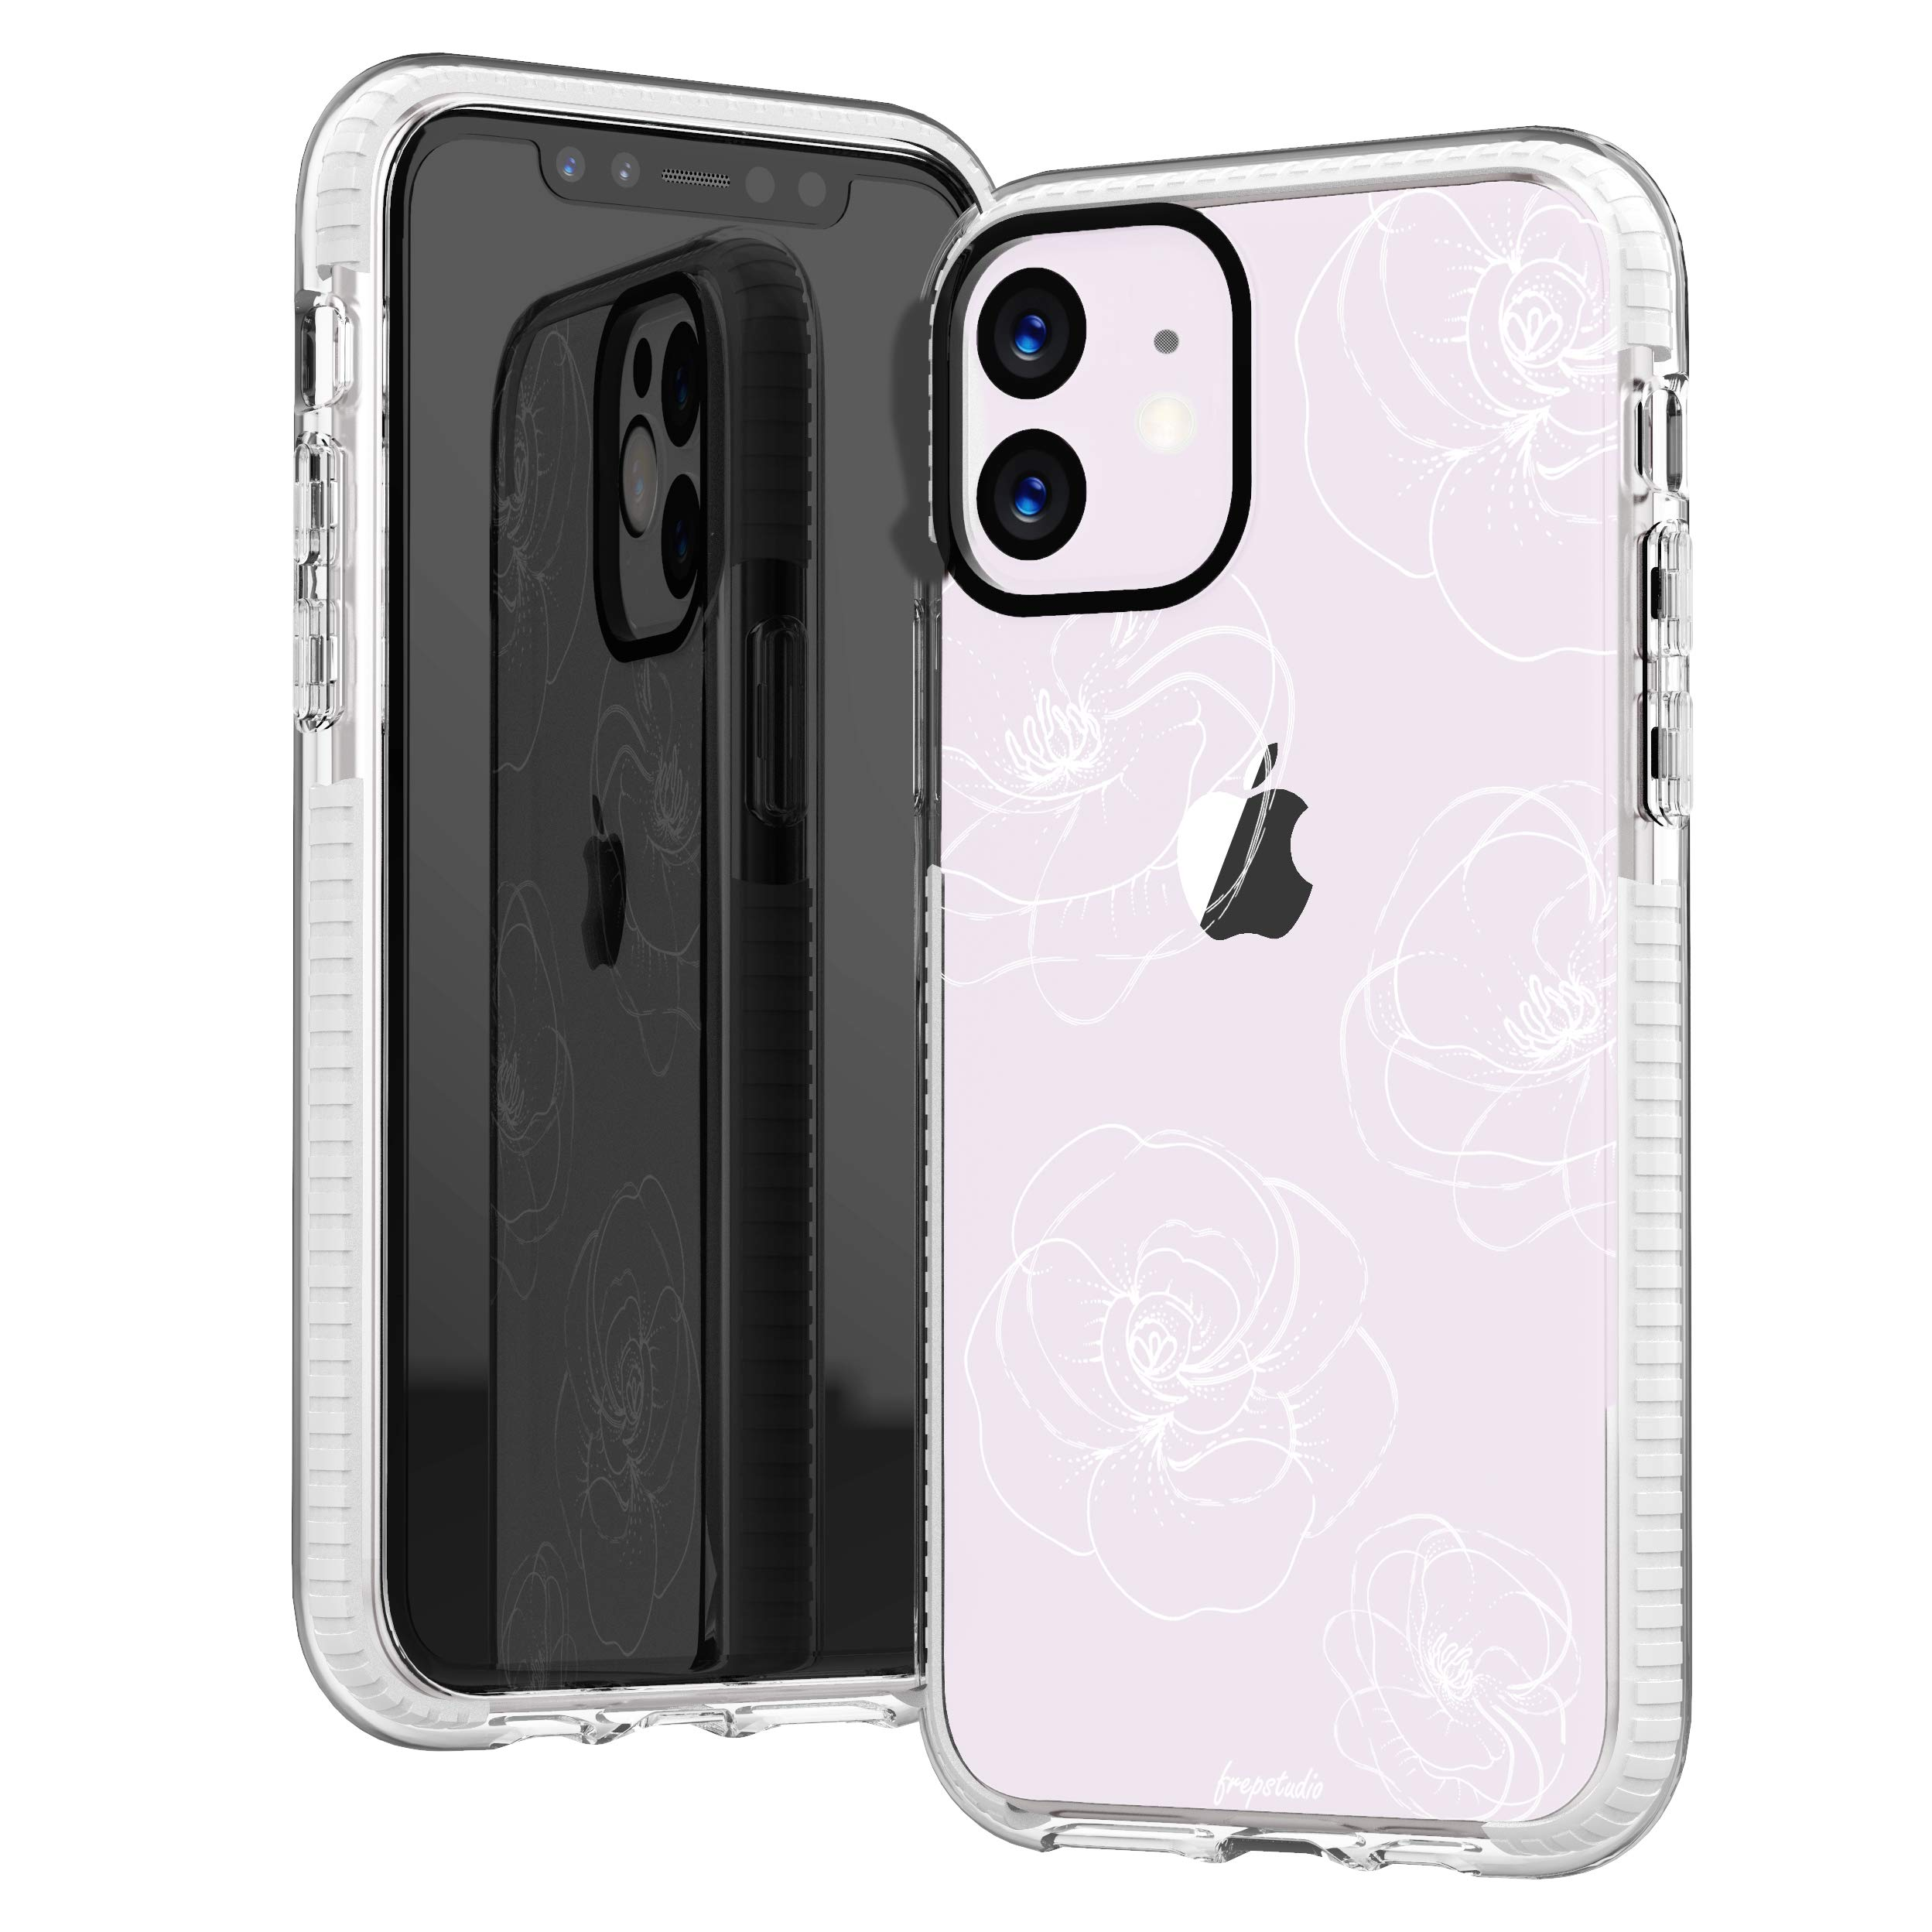 iPhone 11 Clear Case,Girls Women Cute Trendy Girly Line-Drawing Elegant Classical White Roses Floral Flowers Daisy Less is More Elegant Soft Protective Clear Case with Design Compatible for iPhone 11